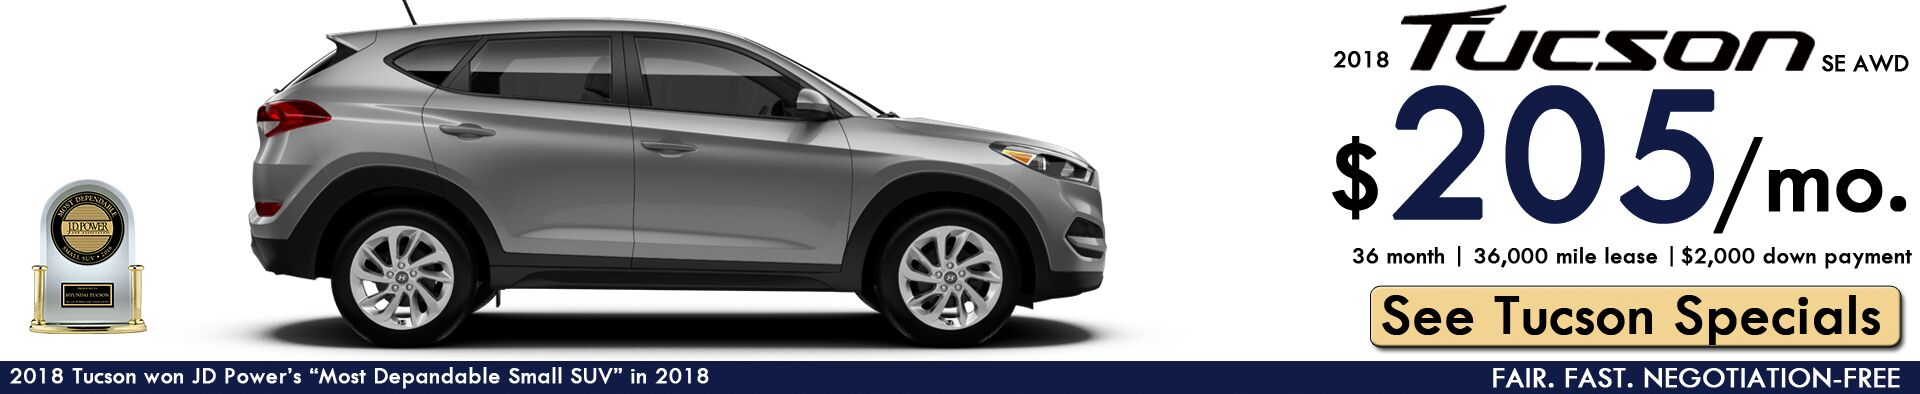 2018 Tucson Lease: $205/month